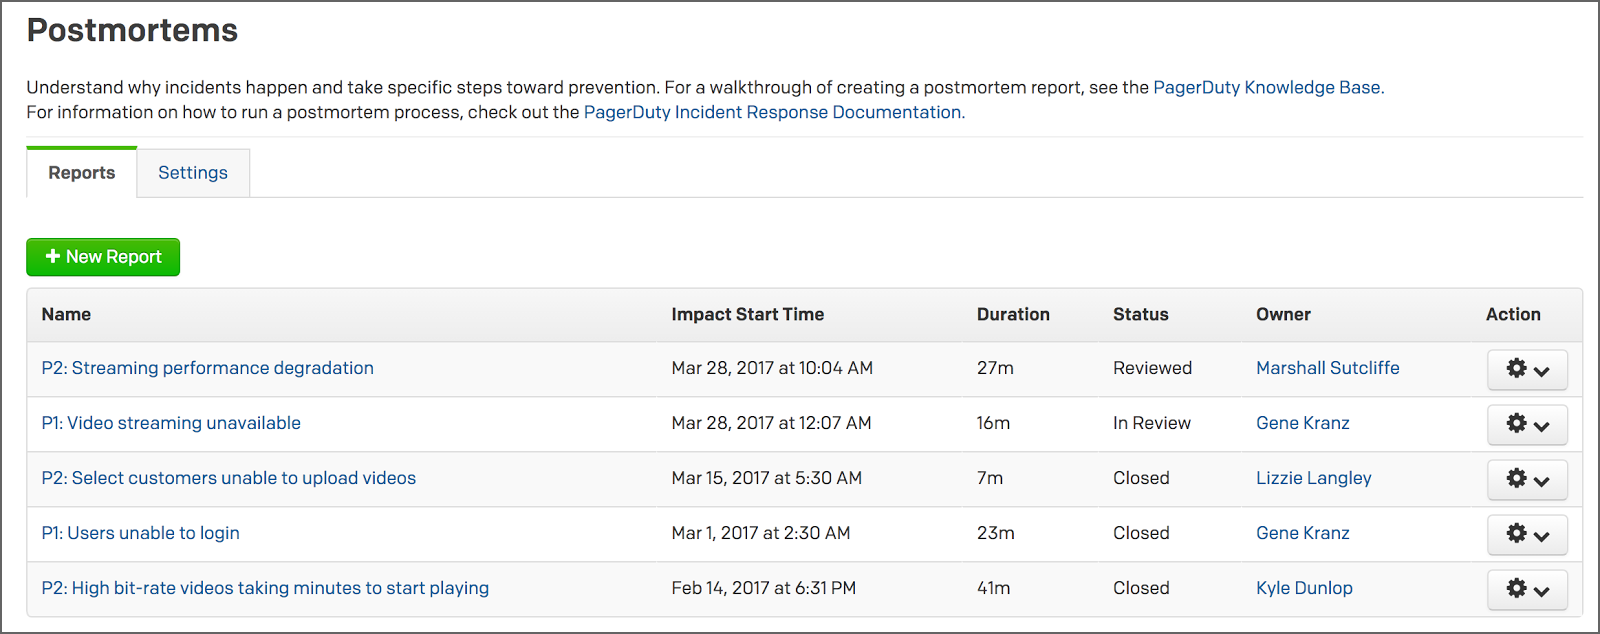 Browse postmortem reports or create a new one